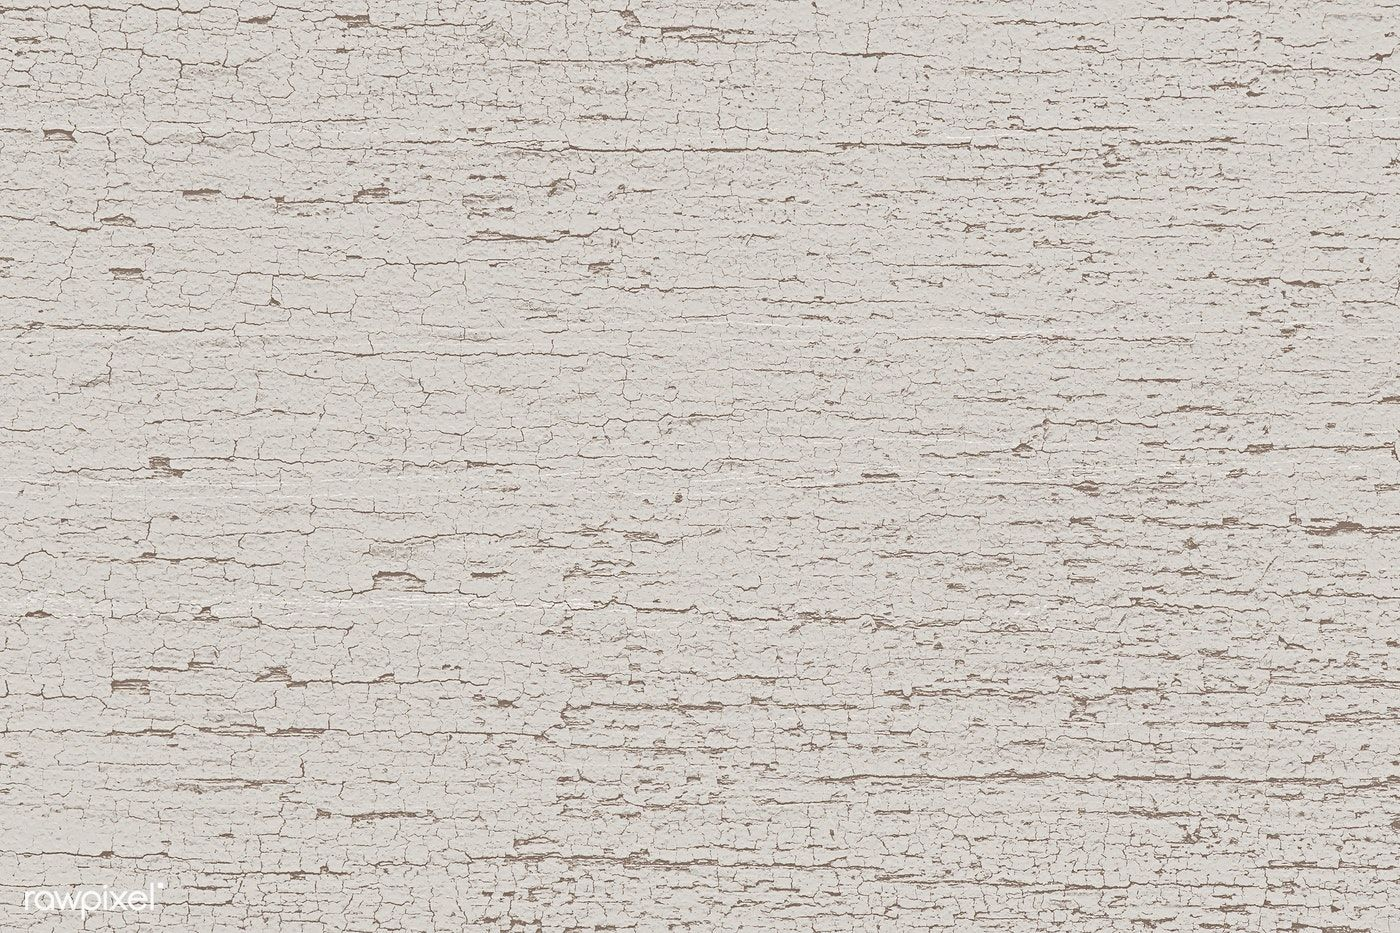 Wooden Concrete Wall Textured Background Free Image By Rawpixel